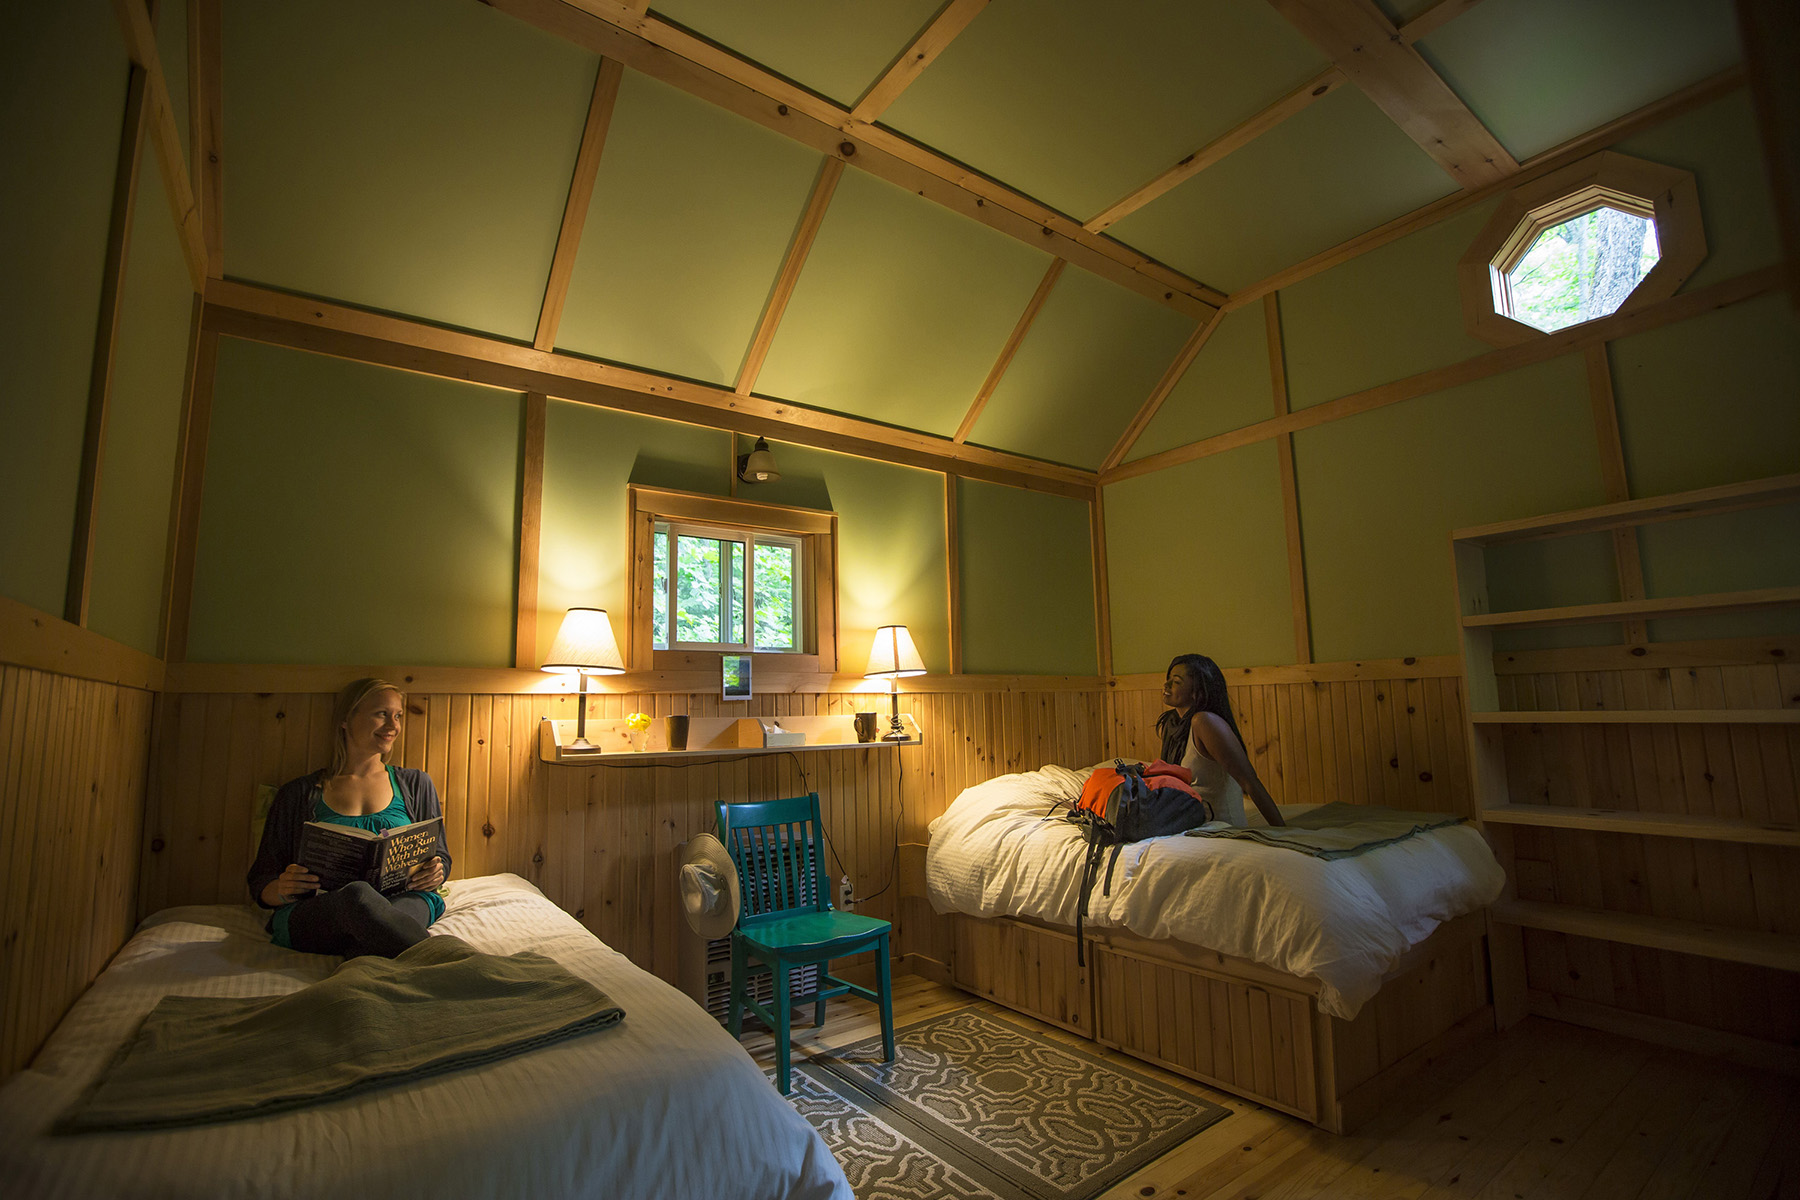 Two girls sitting in beds in a private cabin